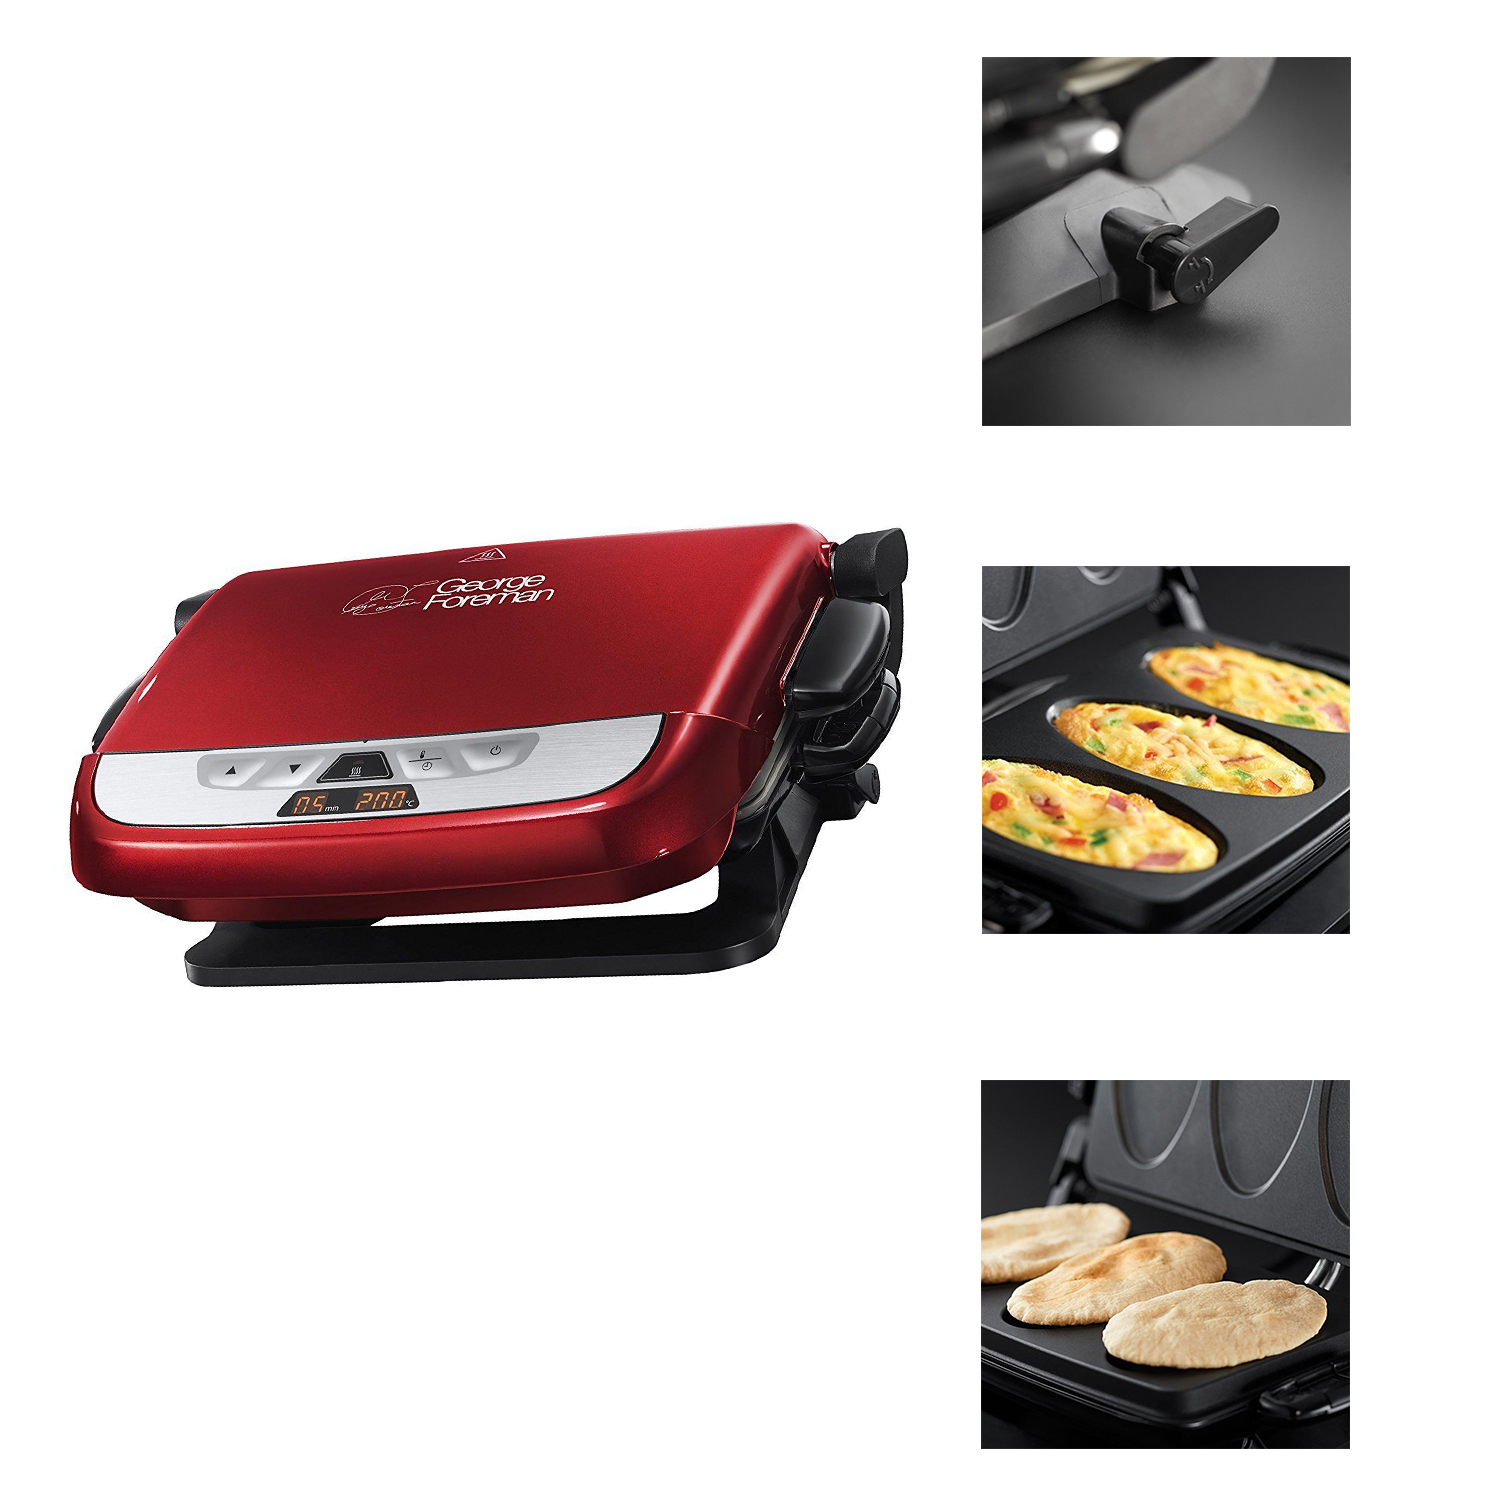 Russell Hobbs Evolve Red Grill 2